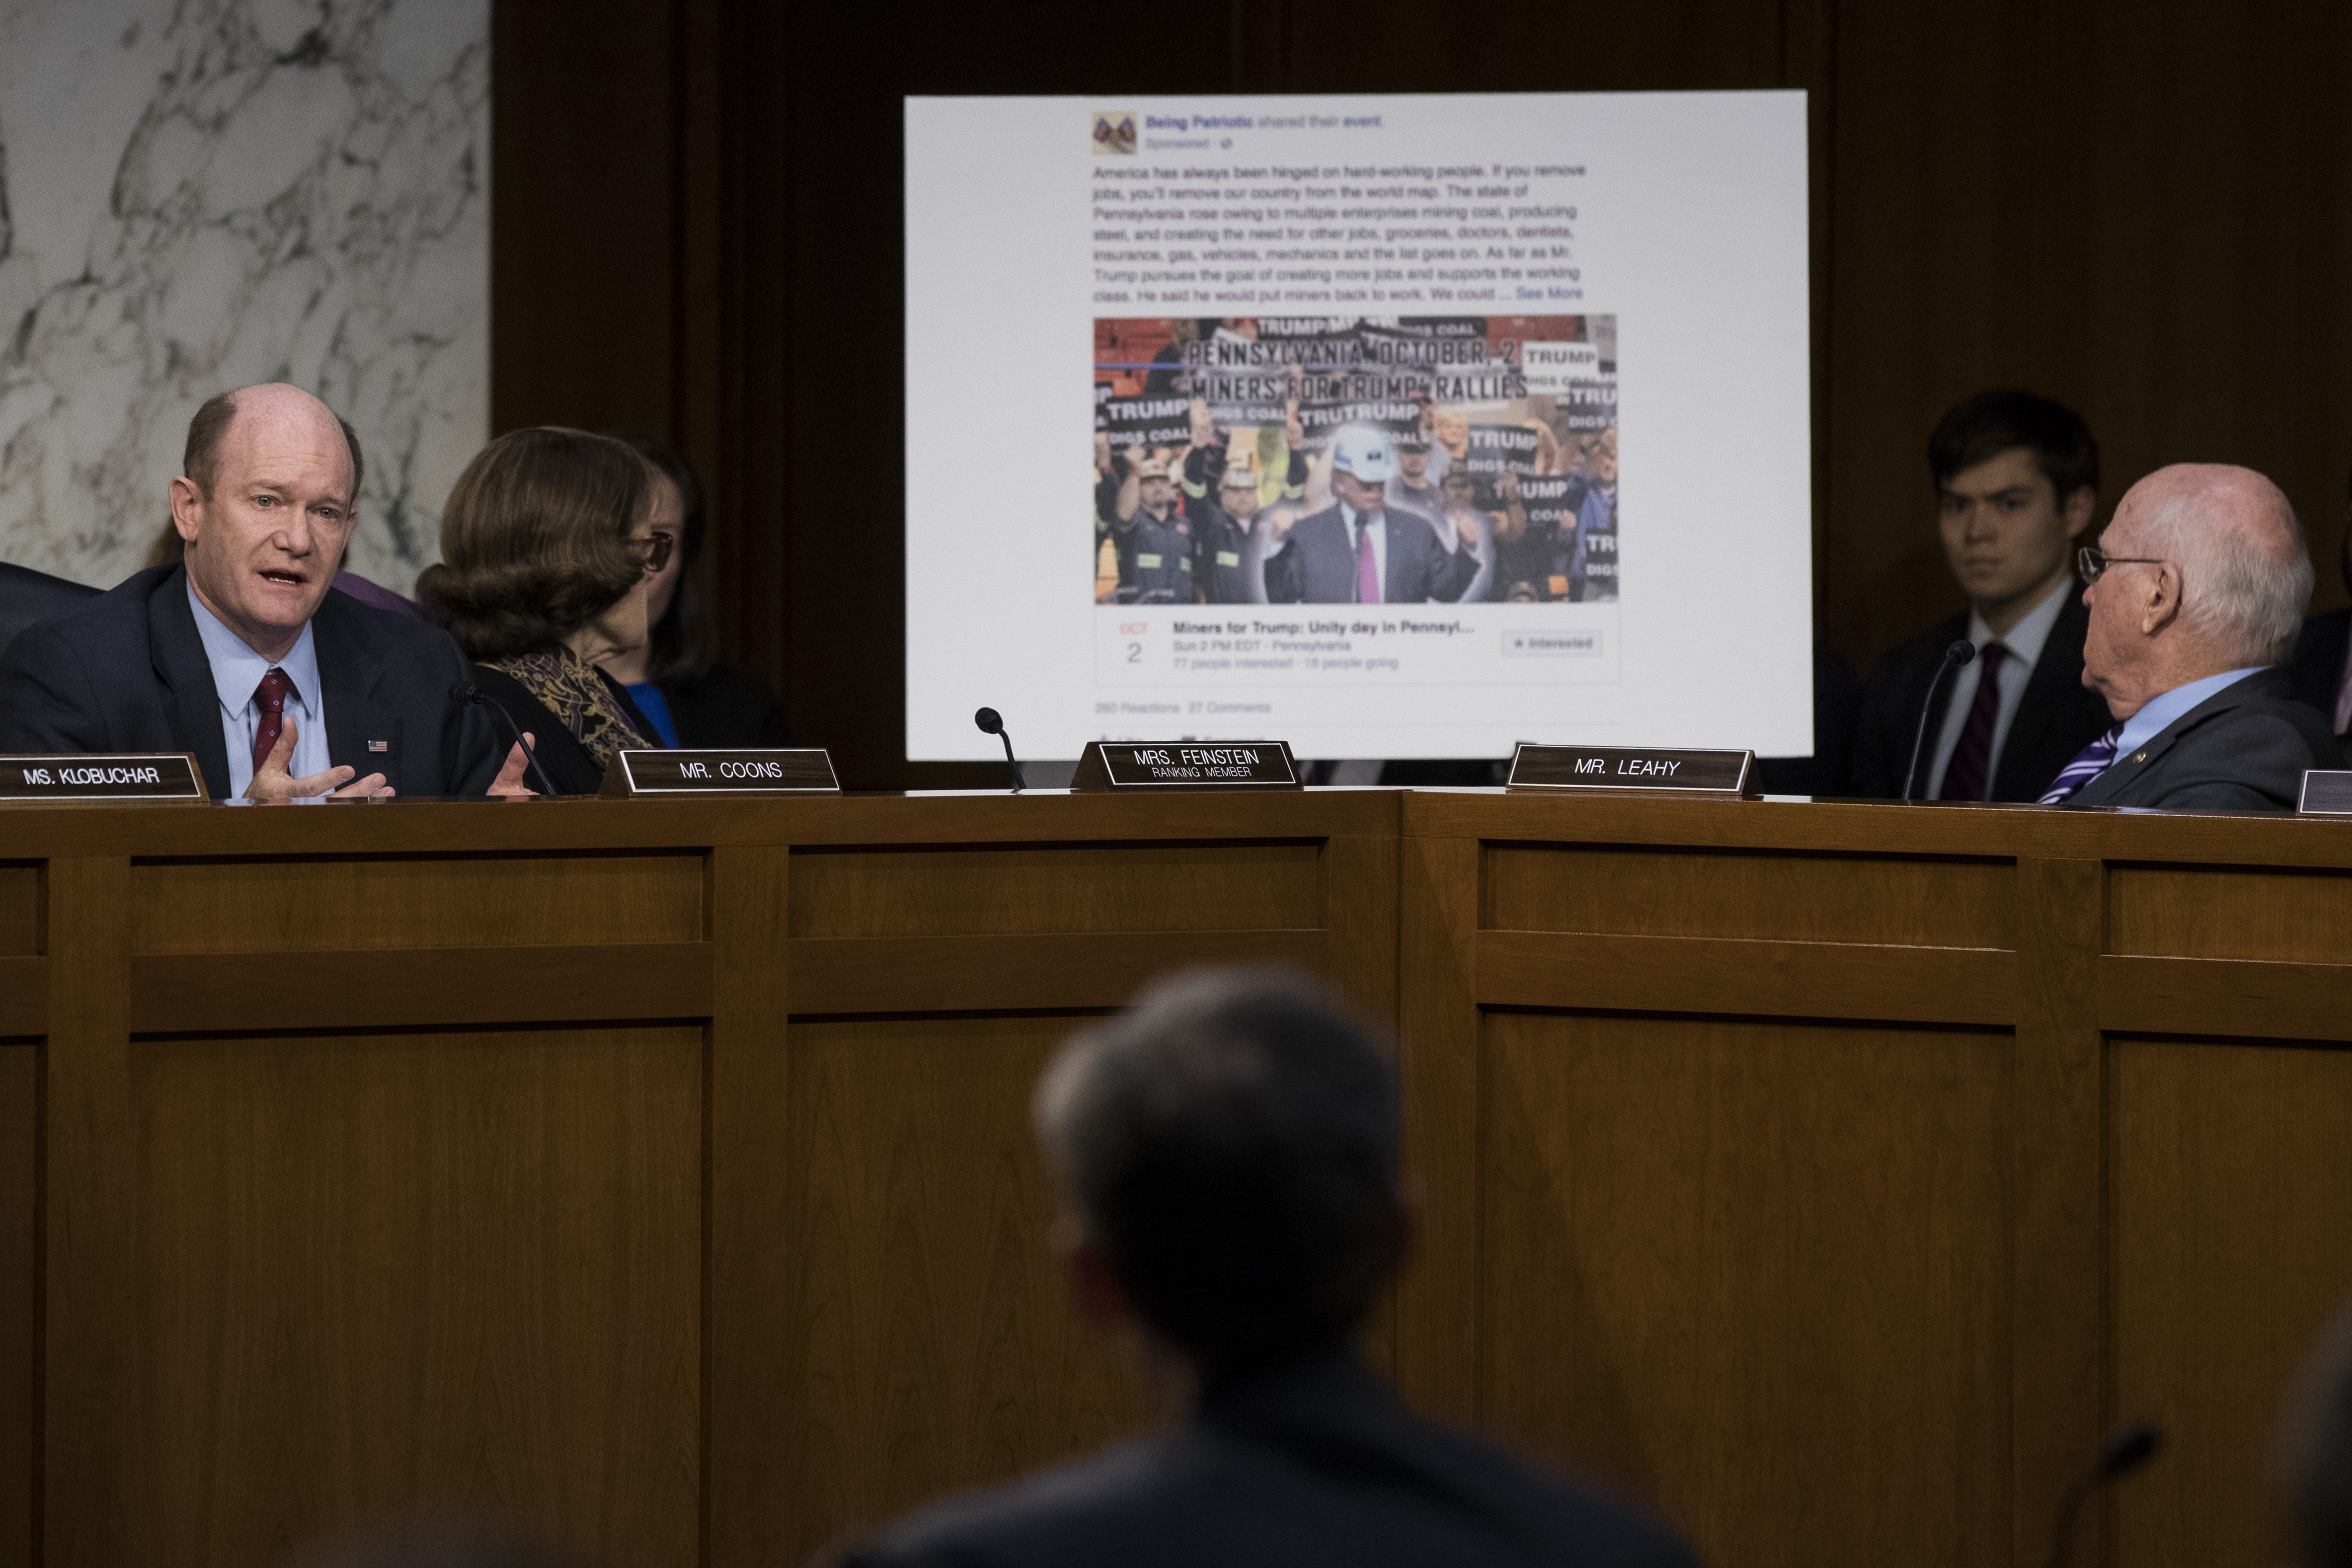 With a Facebook event page featuring a 'Miners For Trump' rally created by Russian operatives displayed behind him, Sen. Chris Coons (D-DE) questions witnesses during a Senate Judiciary Subcommittee on Crime and Terrorism hearing titled 'Extremist Content and Russian Disinformation Online' on Capitol Hill, October 31, 2017 in Washington, DC. (Drew Angerer/Getty Images)